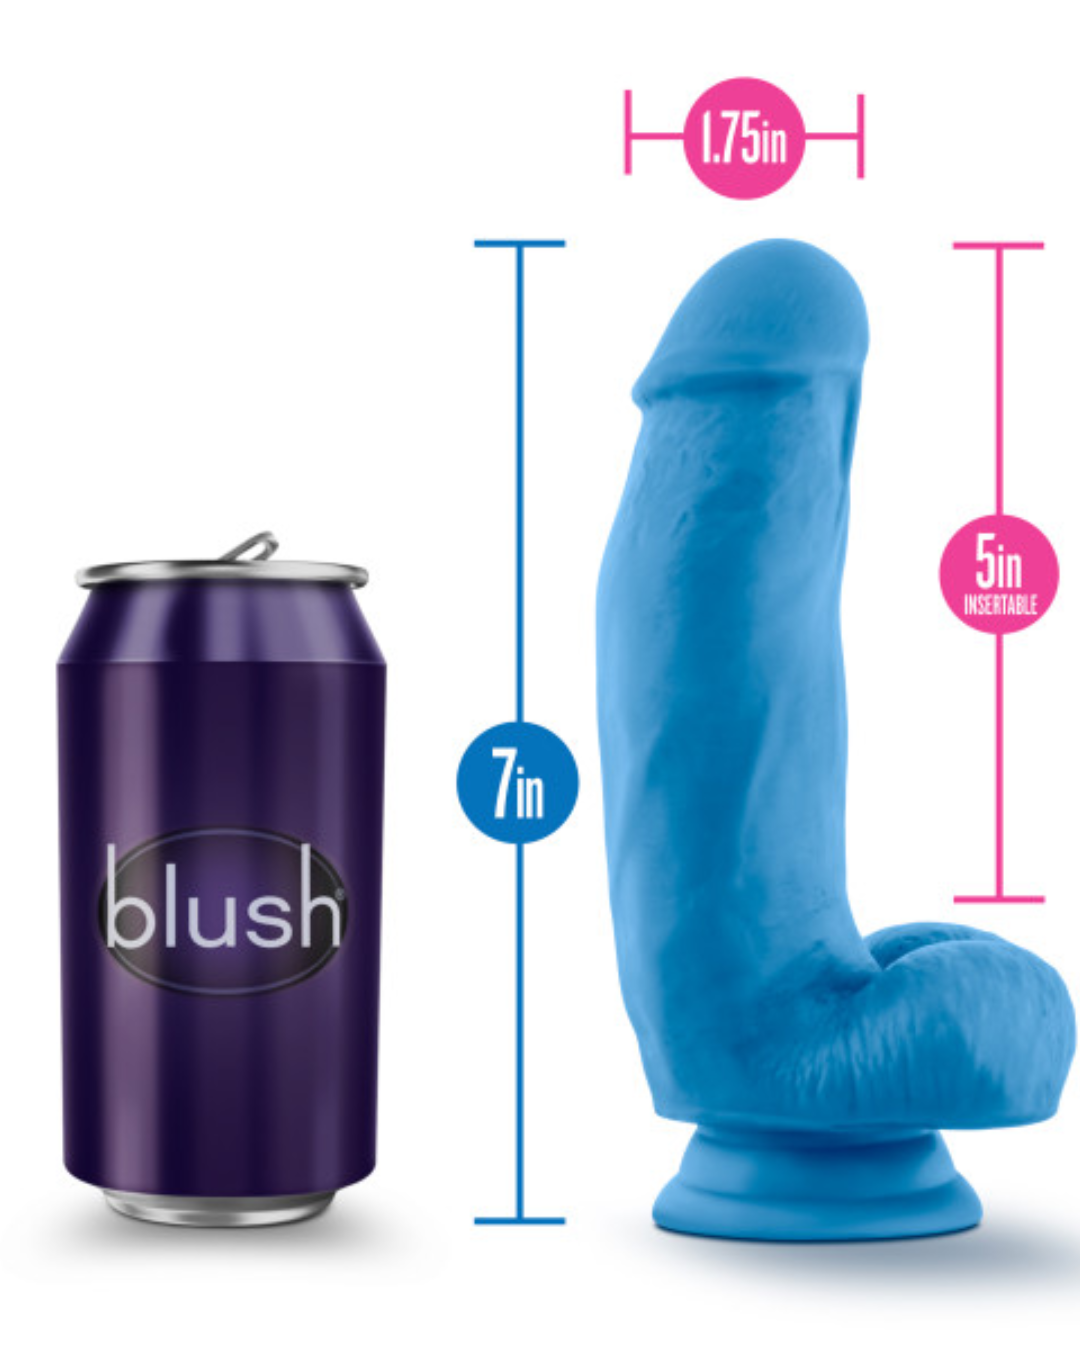 Neo Elite 7 Inch Dual Density Silicone Dildo with Balls by Blush - Neon Blue showing the measurements